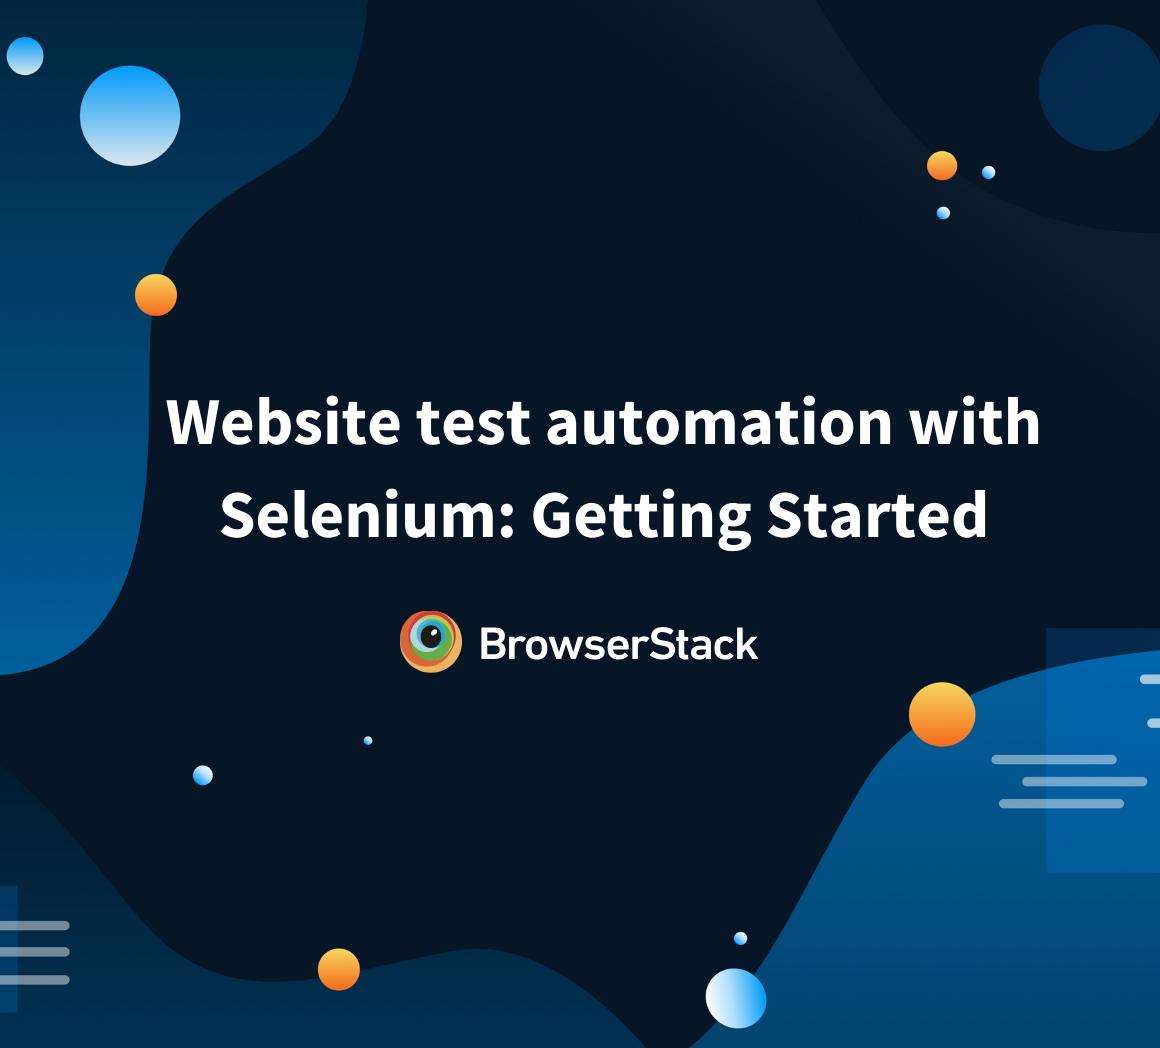 Website test automation with Selenium: Getting Started